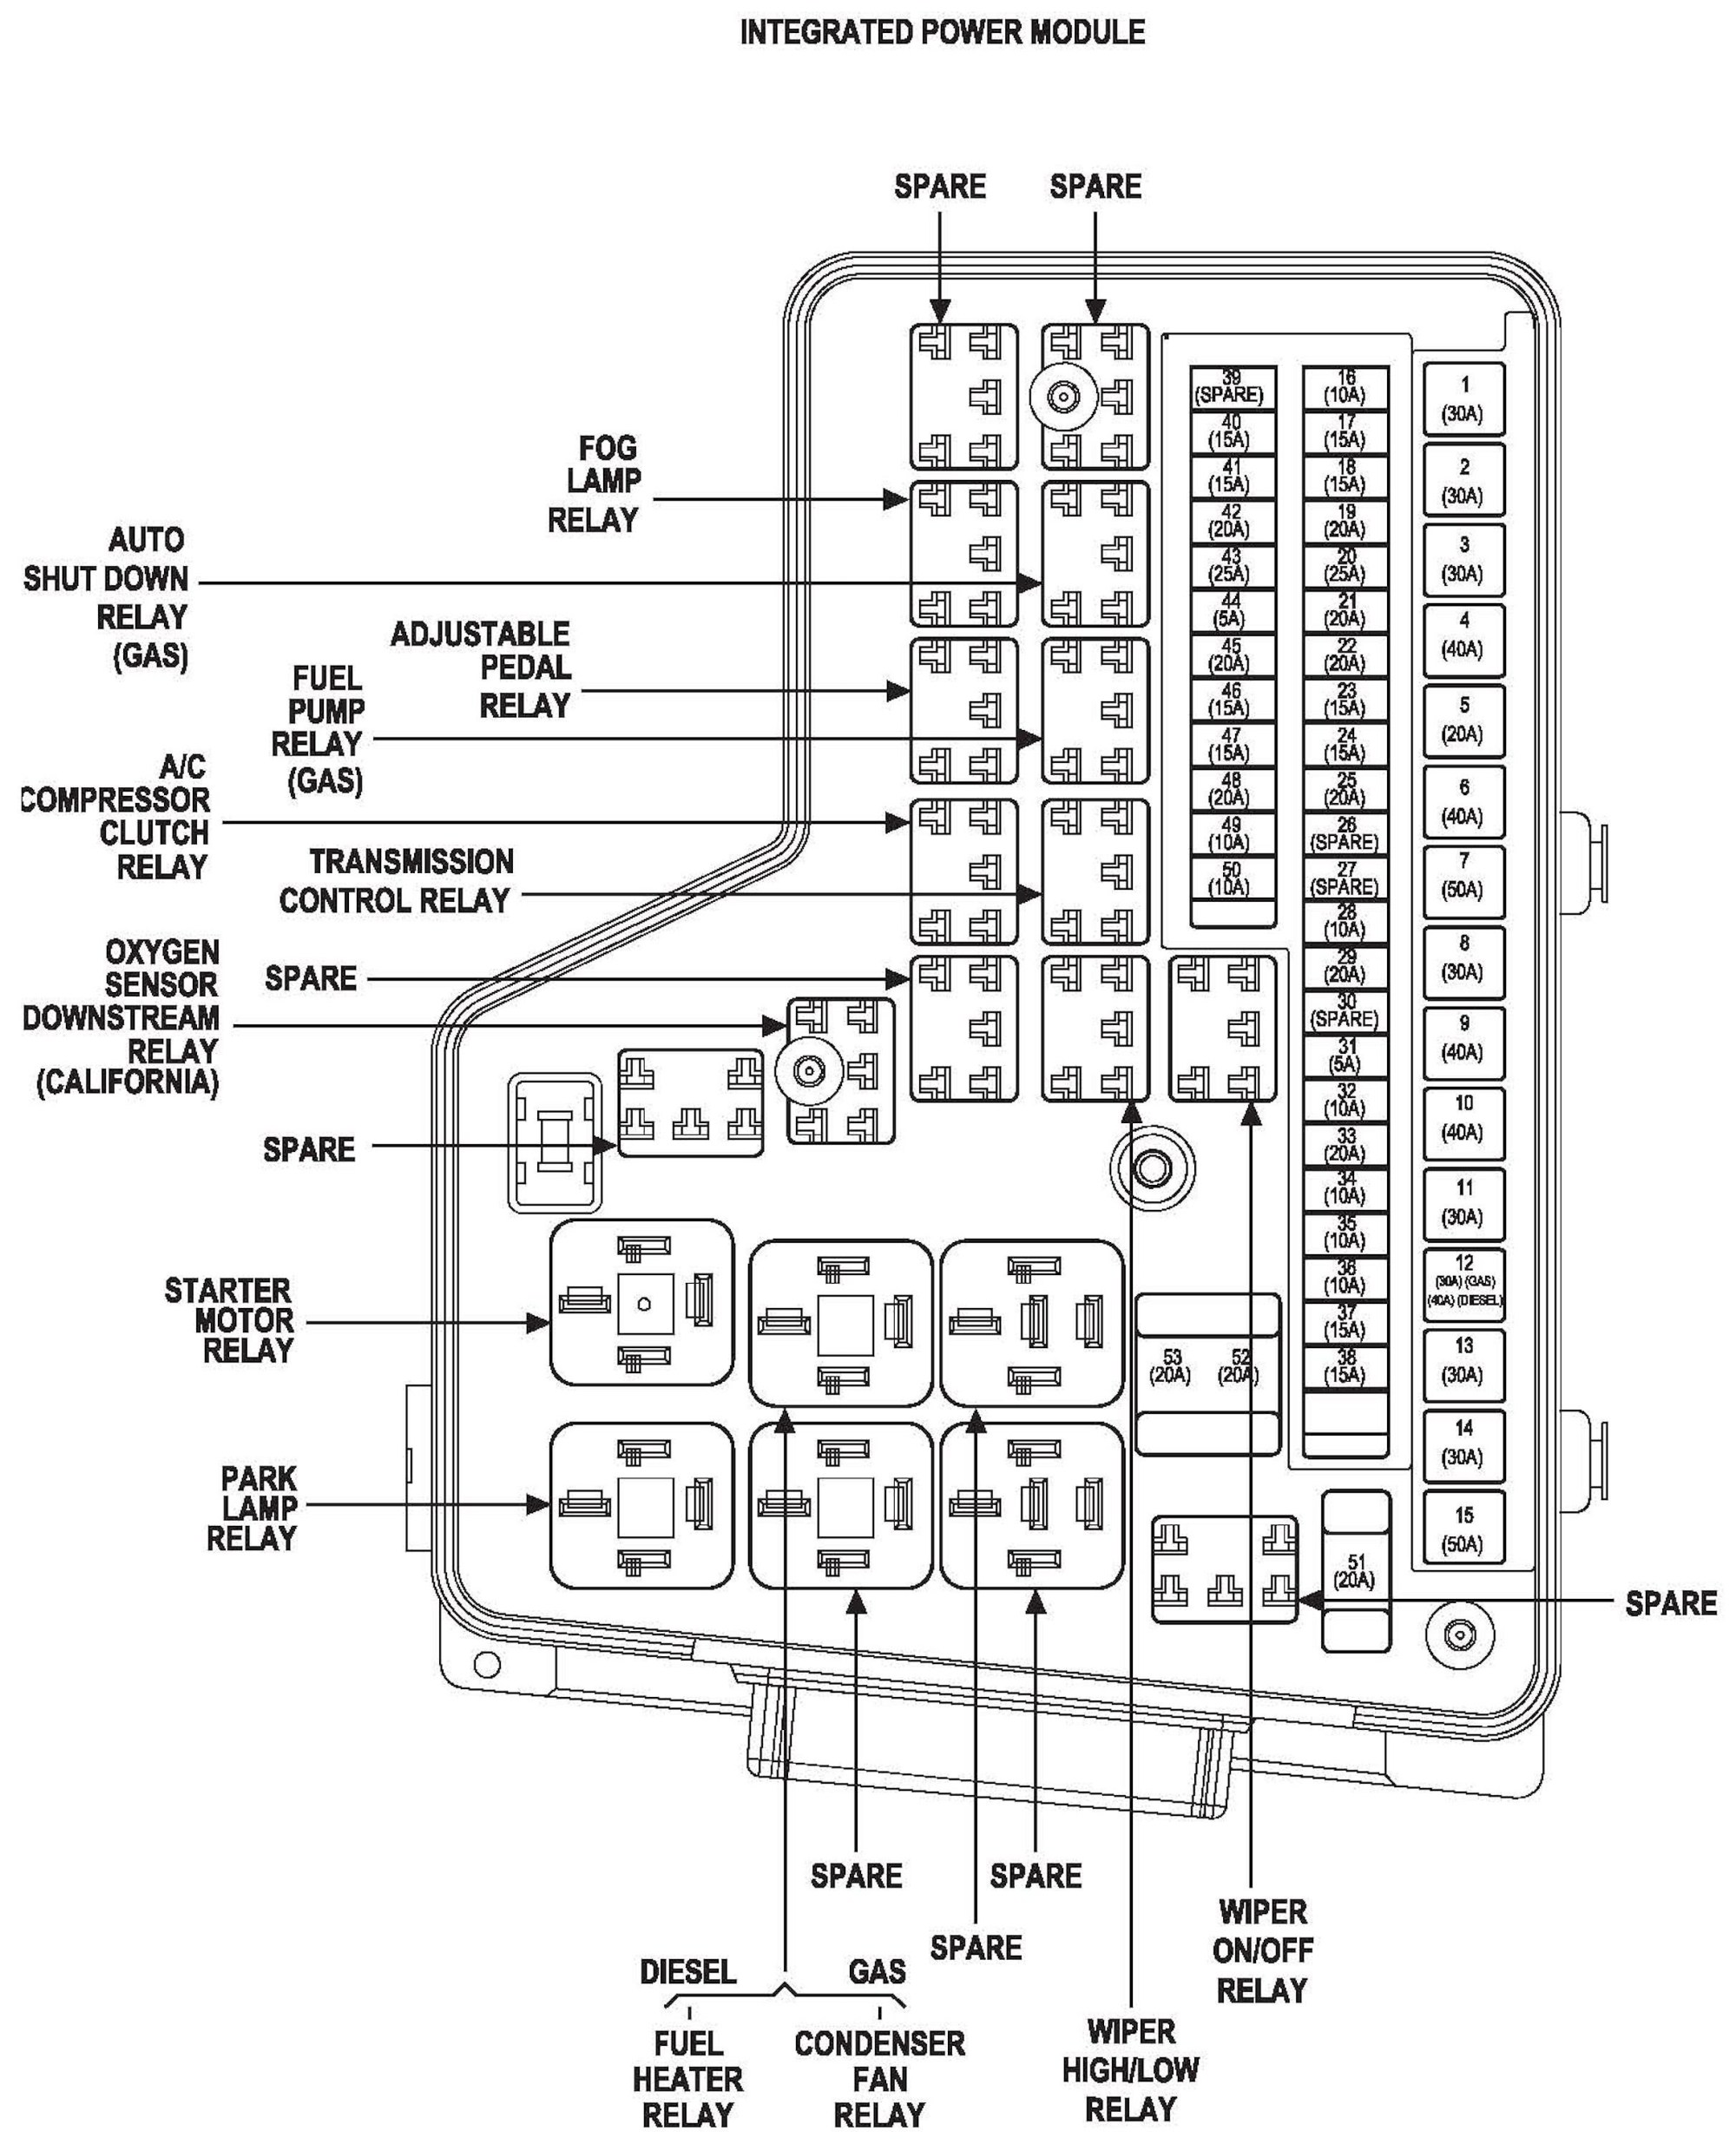 hight resolution of 2004 dodge ram 2500 fuse diagram wiring diagram expert 2004 dodge ram fuse box trailer light relay repair 2004 dodge ram fuse box